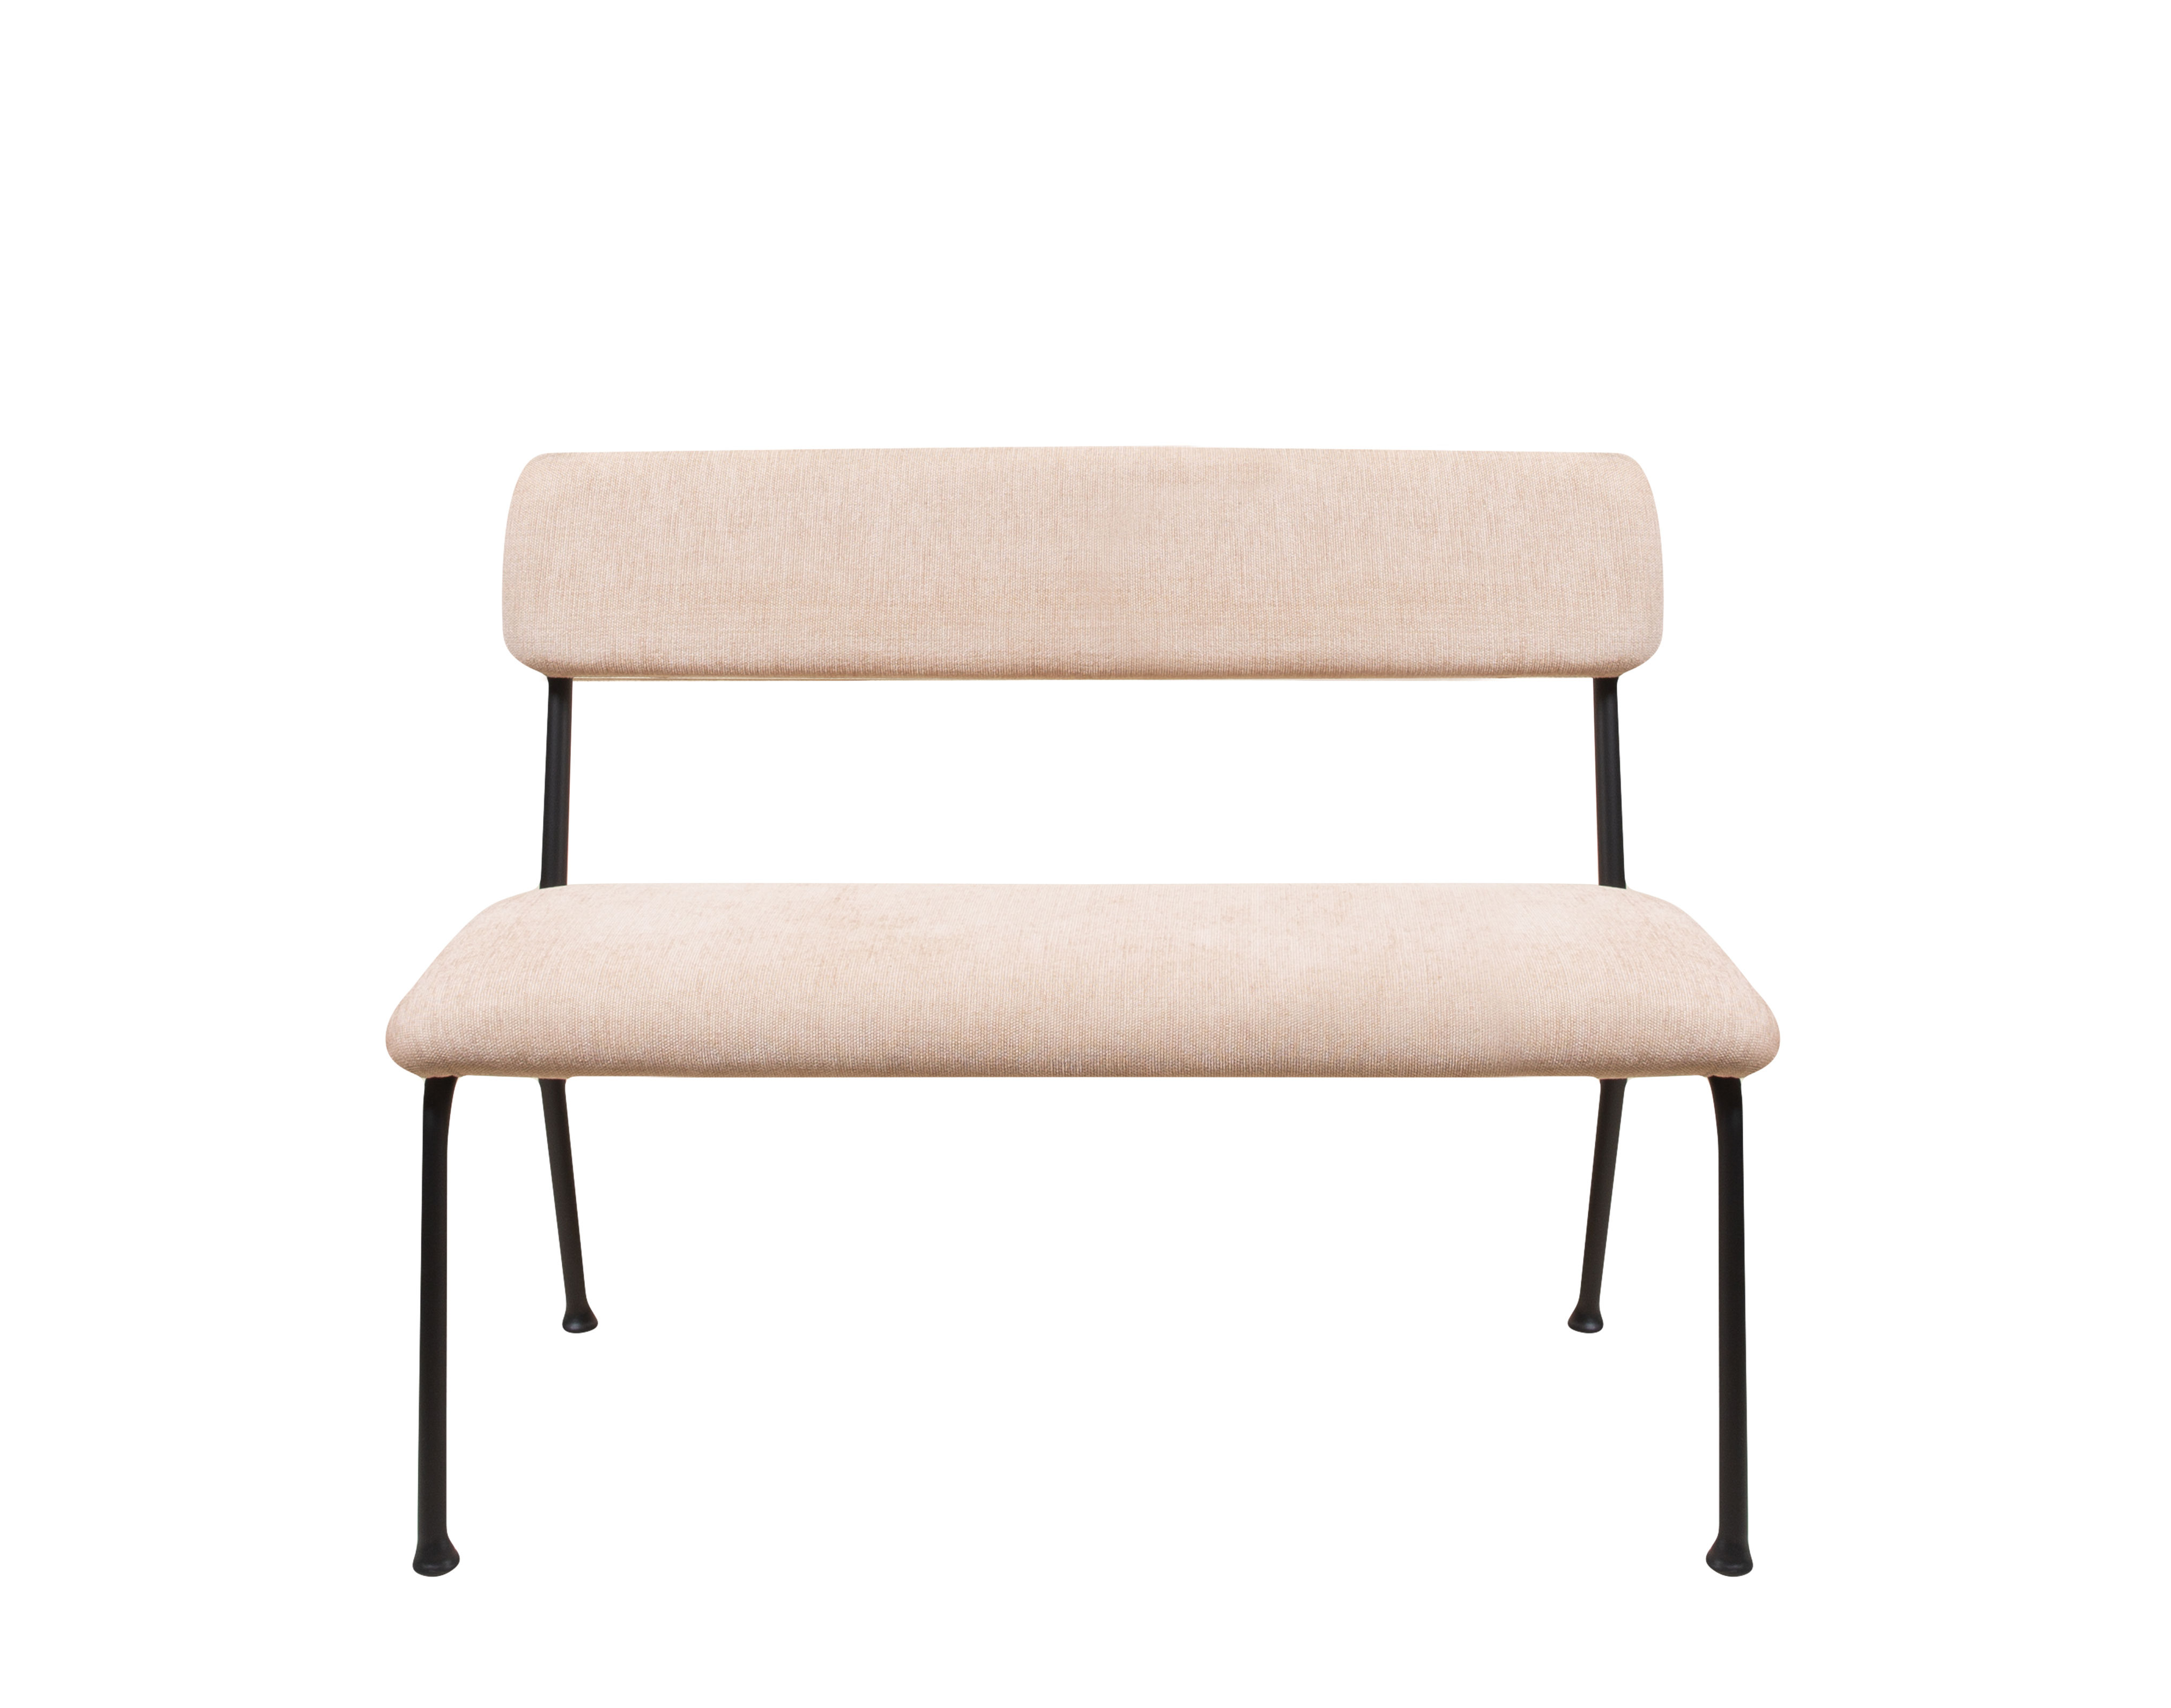 Furniture - Benches - Le Tube Small Bench with backrest - / Fabric - L 110 cm by Maison Sarah Lavoine - Pink - Fabric, Foam, Powder coated steel